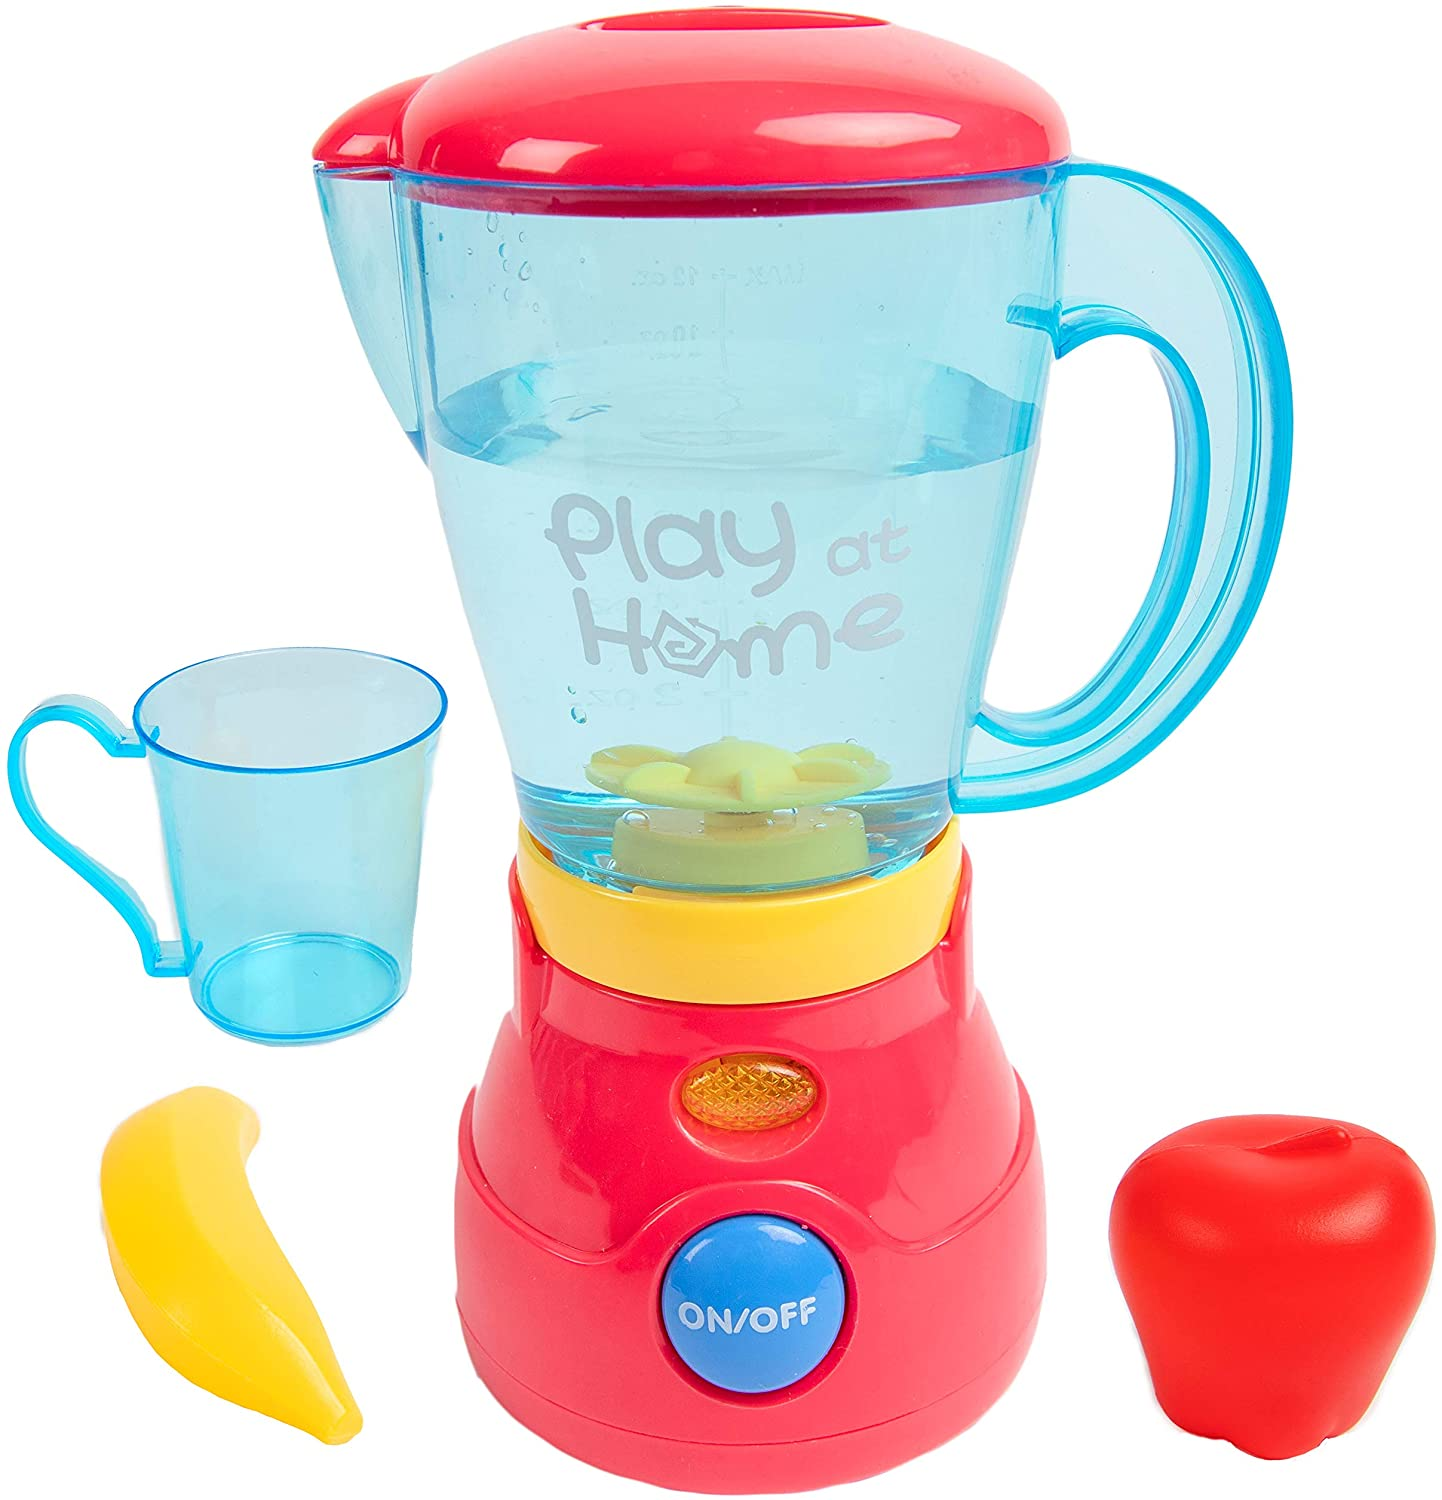 Toy Chef Play Kitchen Appliances – Premium Pretend Blender for Kids– Red and Blue Themed Toddler Kitchen Accessories – Cool Present for Girls and Boys